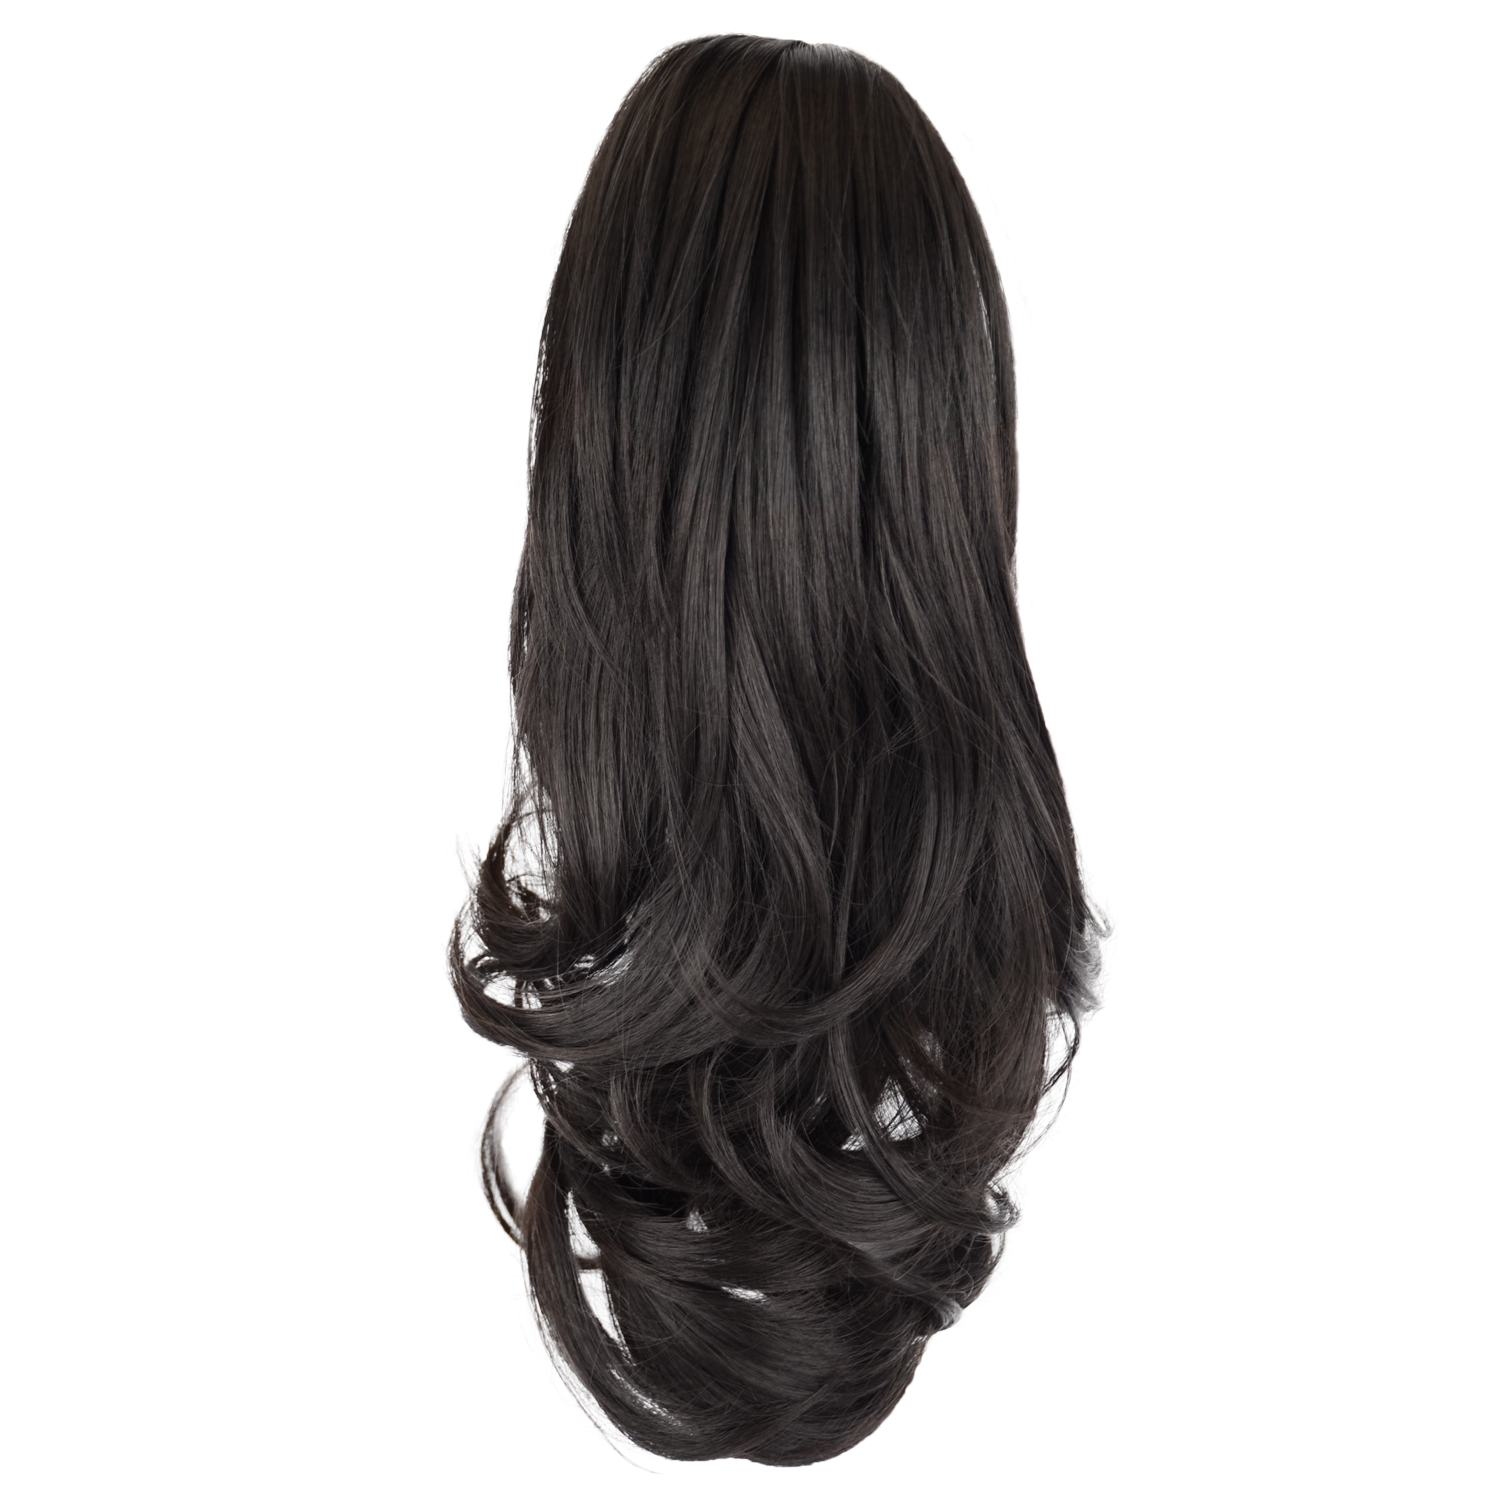 12 - 32 Inch Human Hair Piece Ponytail Extension Drawstring on a Claw Clip Attachment Natural Looking for Women Loose Wave #1B 5